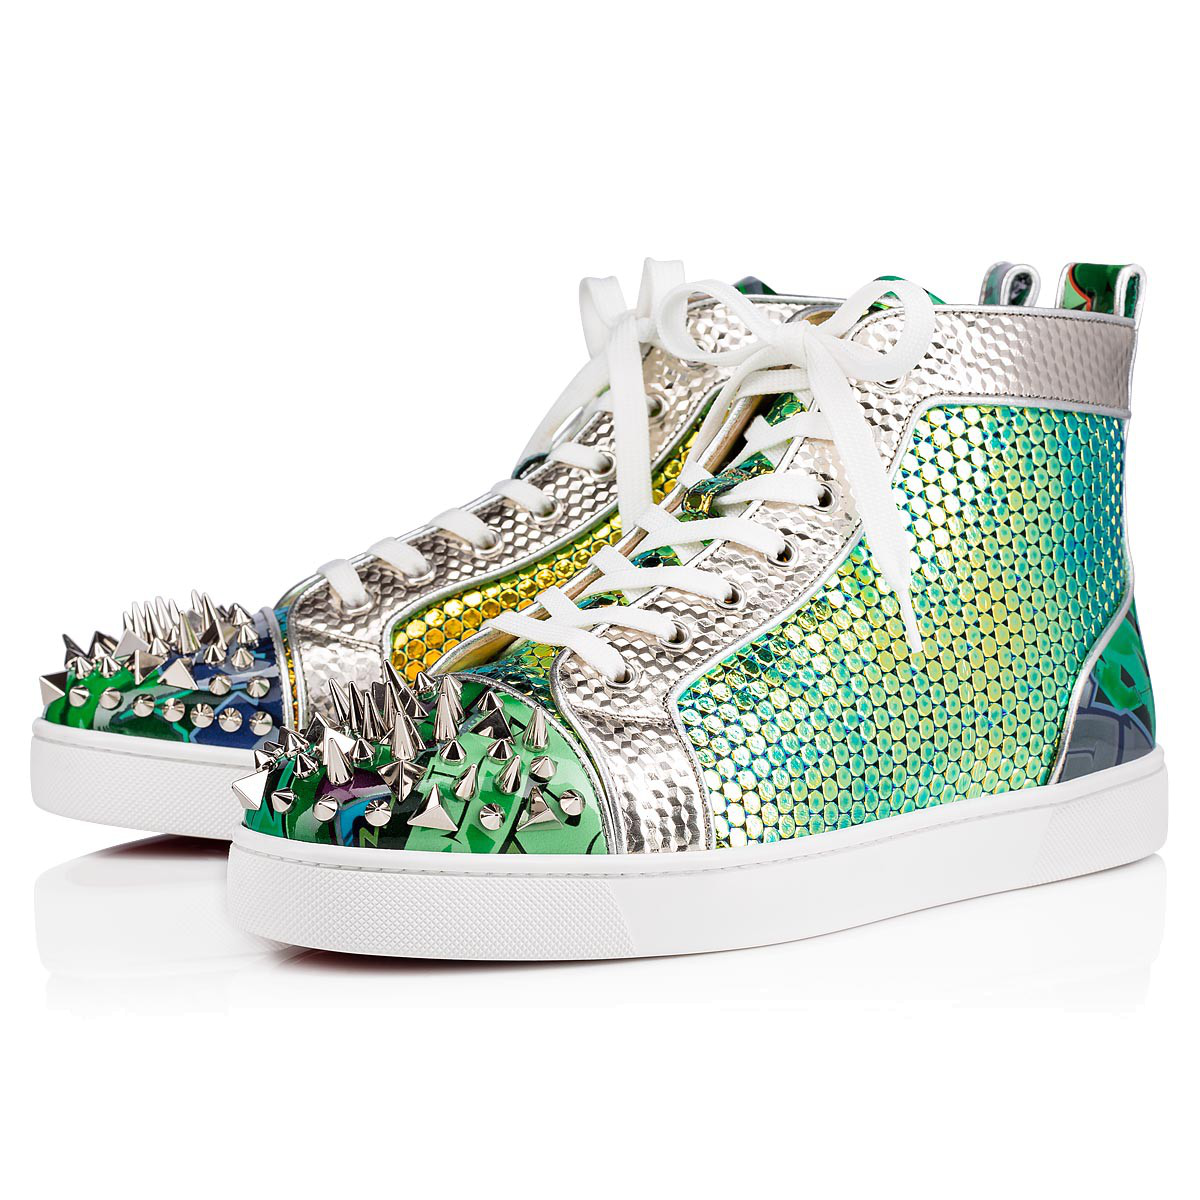 97e336b497c Christian Louboutin Men s Spiked Metallic Holographic Mid-Top Sneakers In  Version Taiga